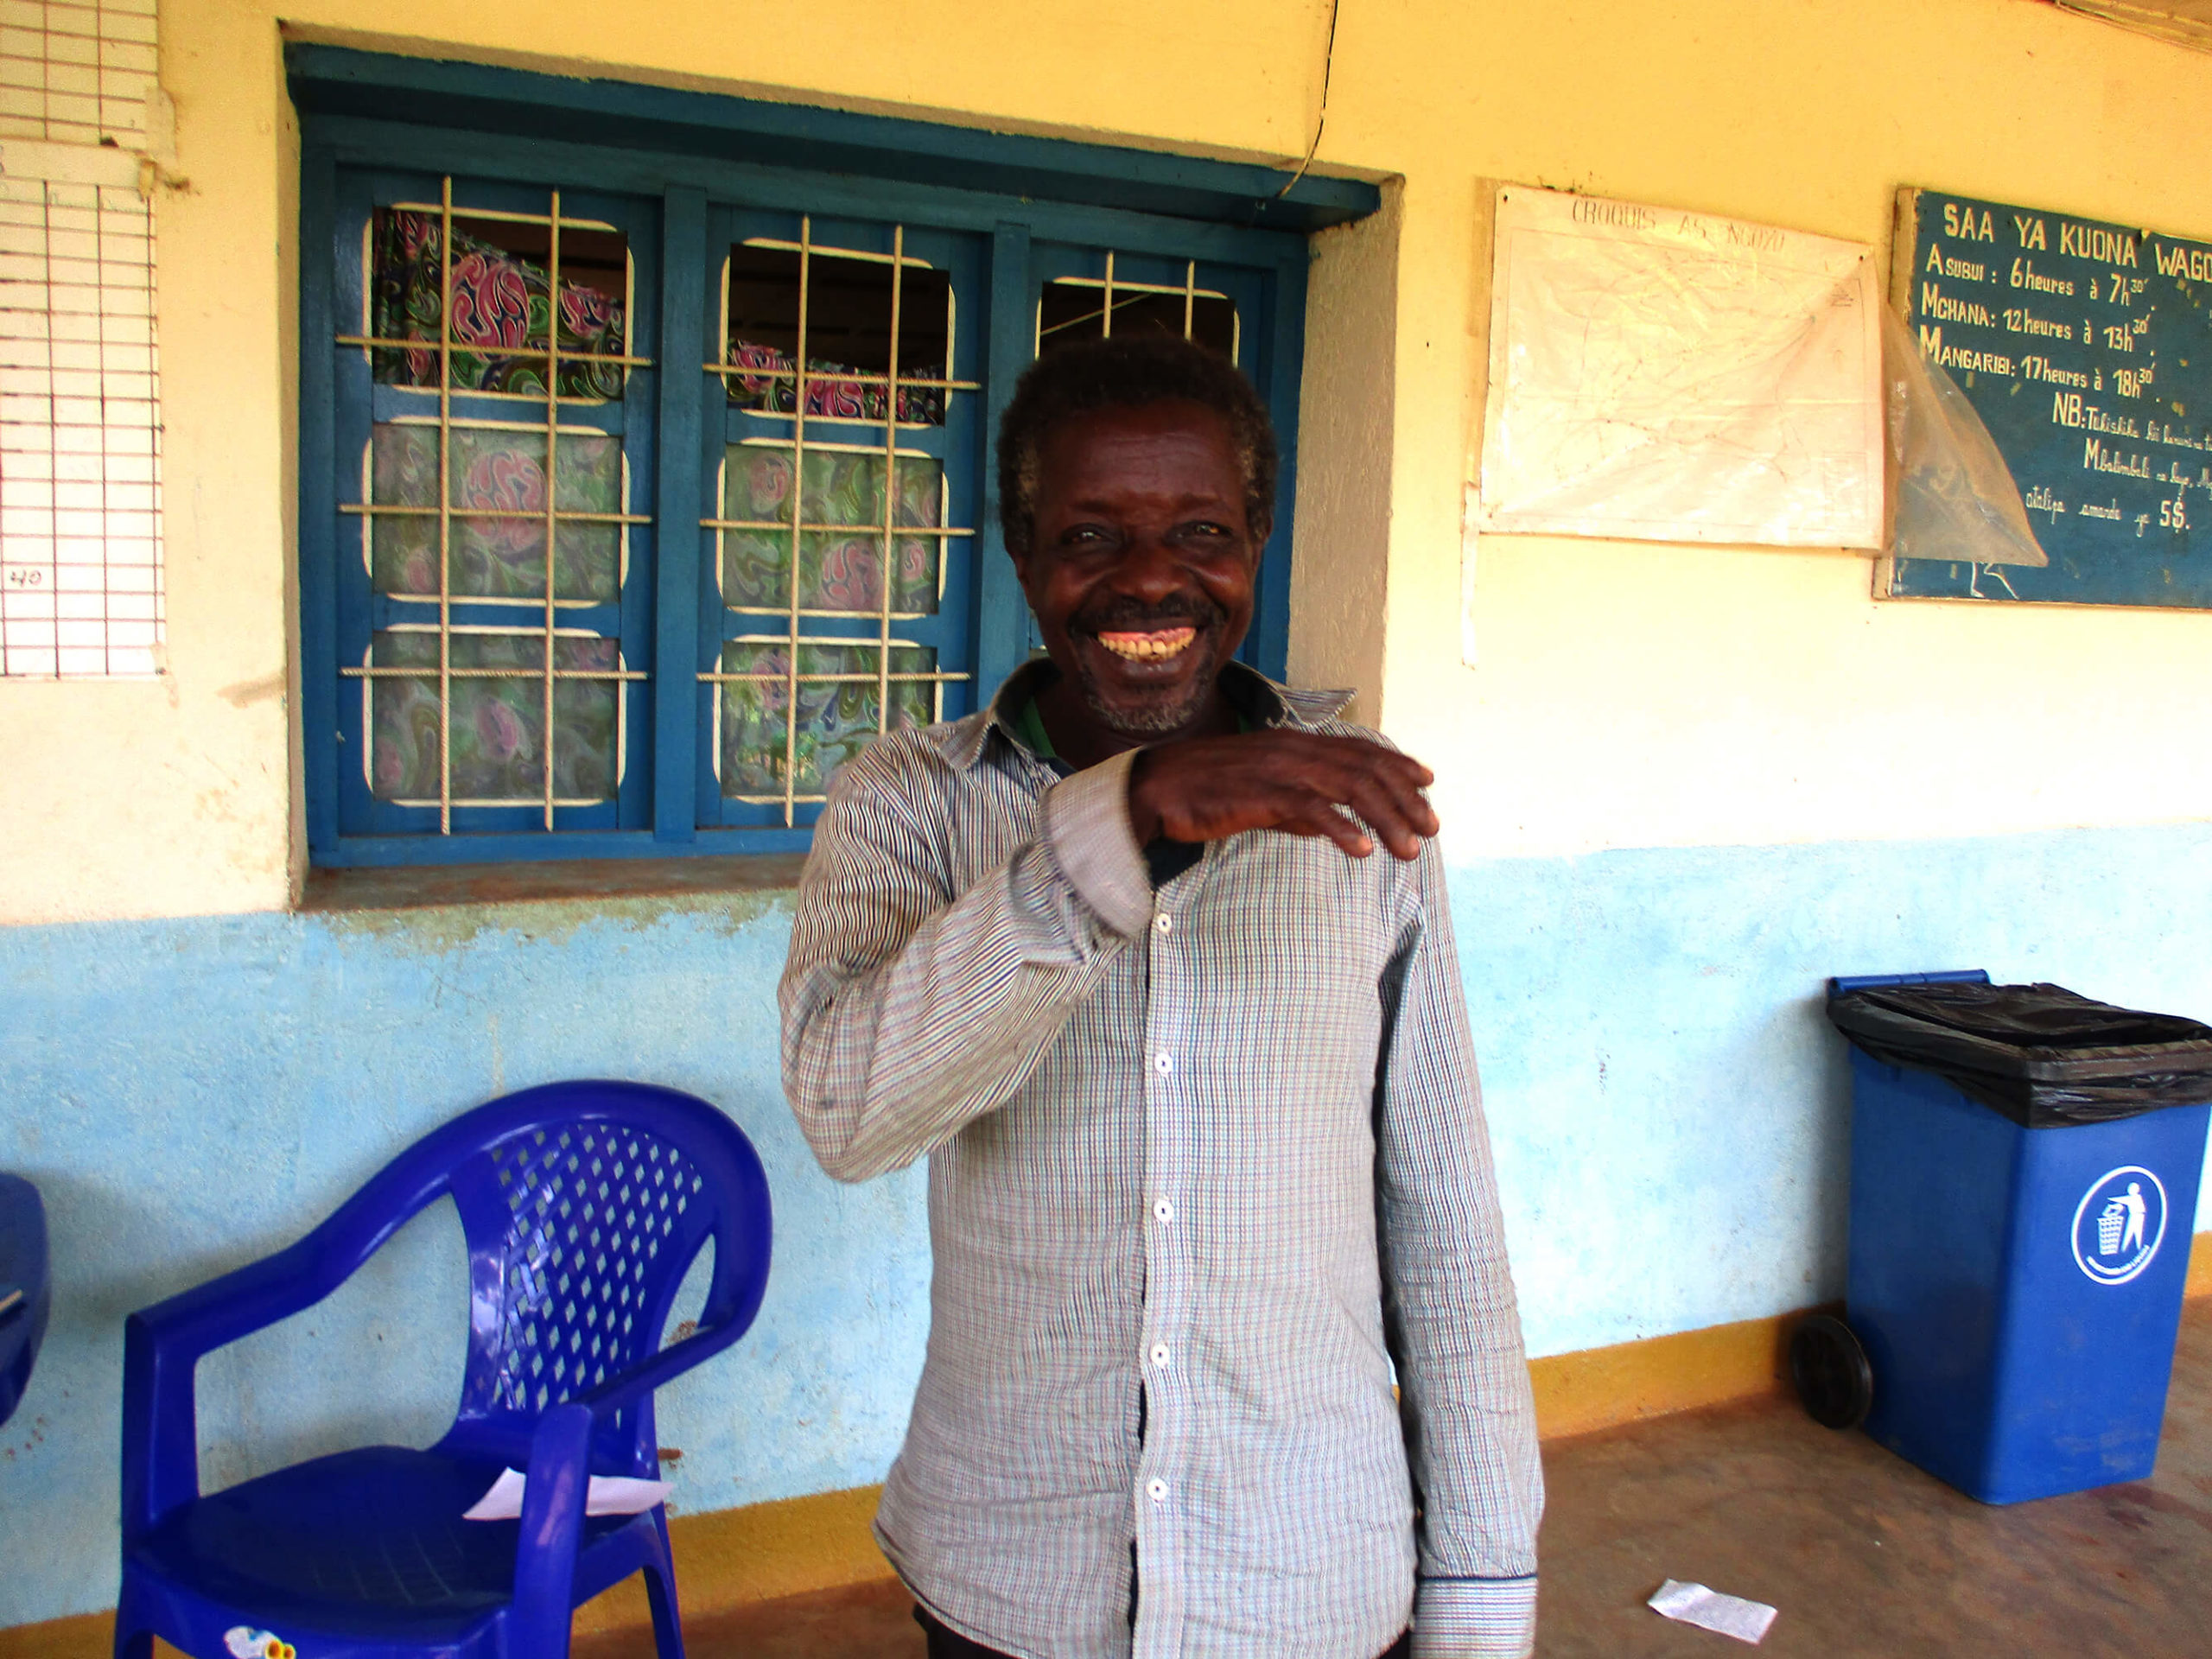 Mayongezo, a Ngoyo community member, expresses gratitude for the health education he received on how to prevent Ebola and COVID-19.